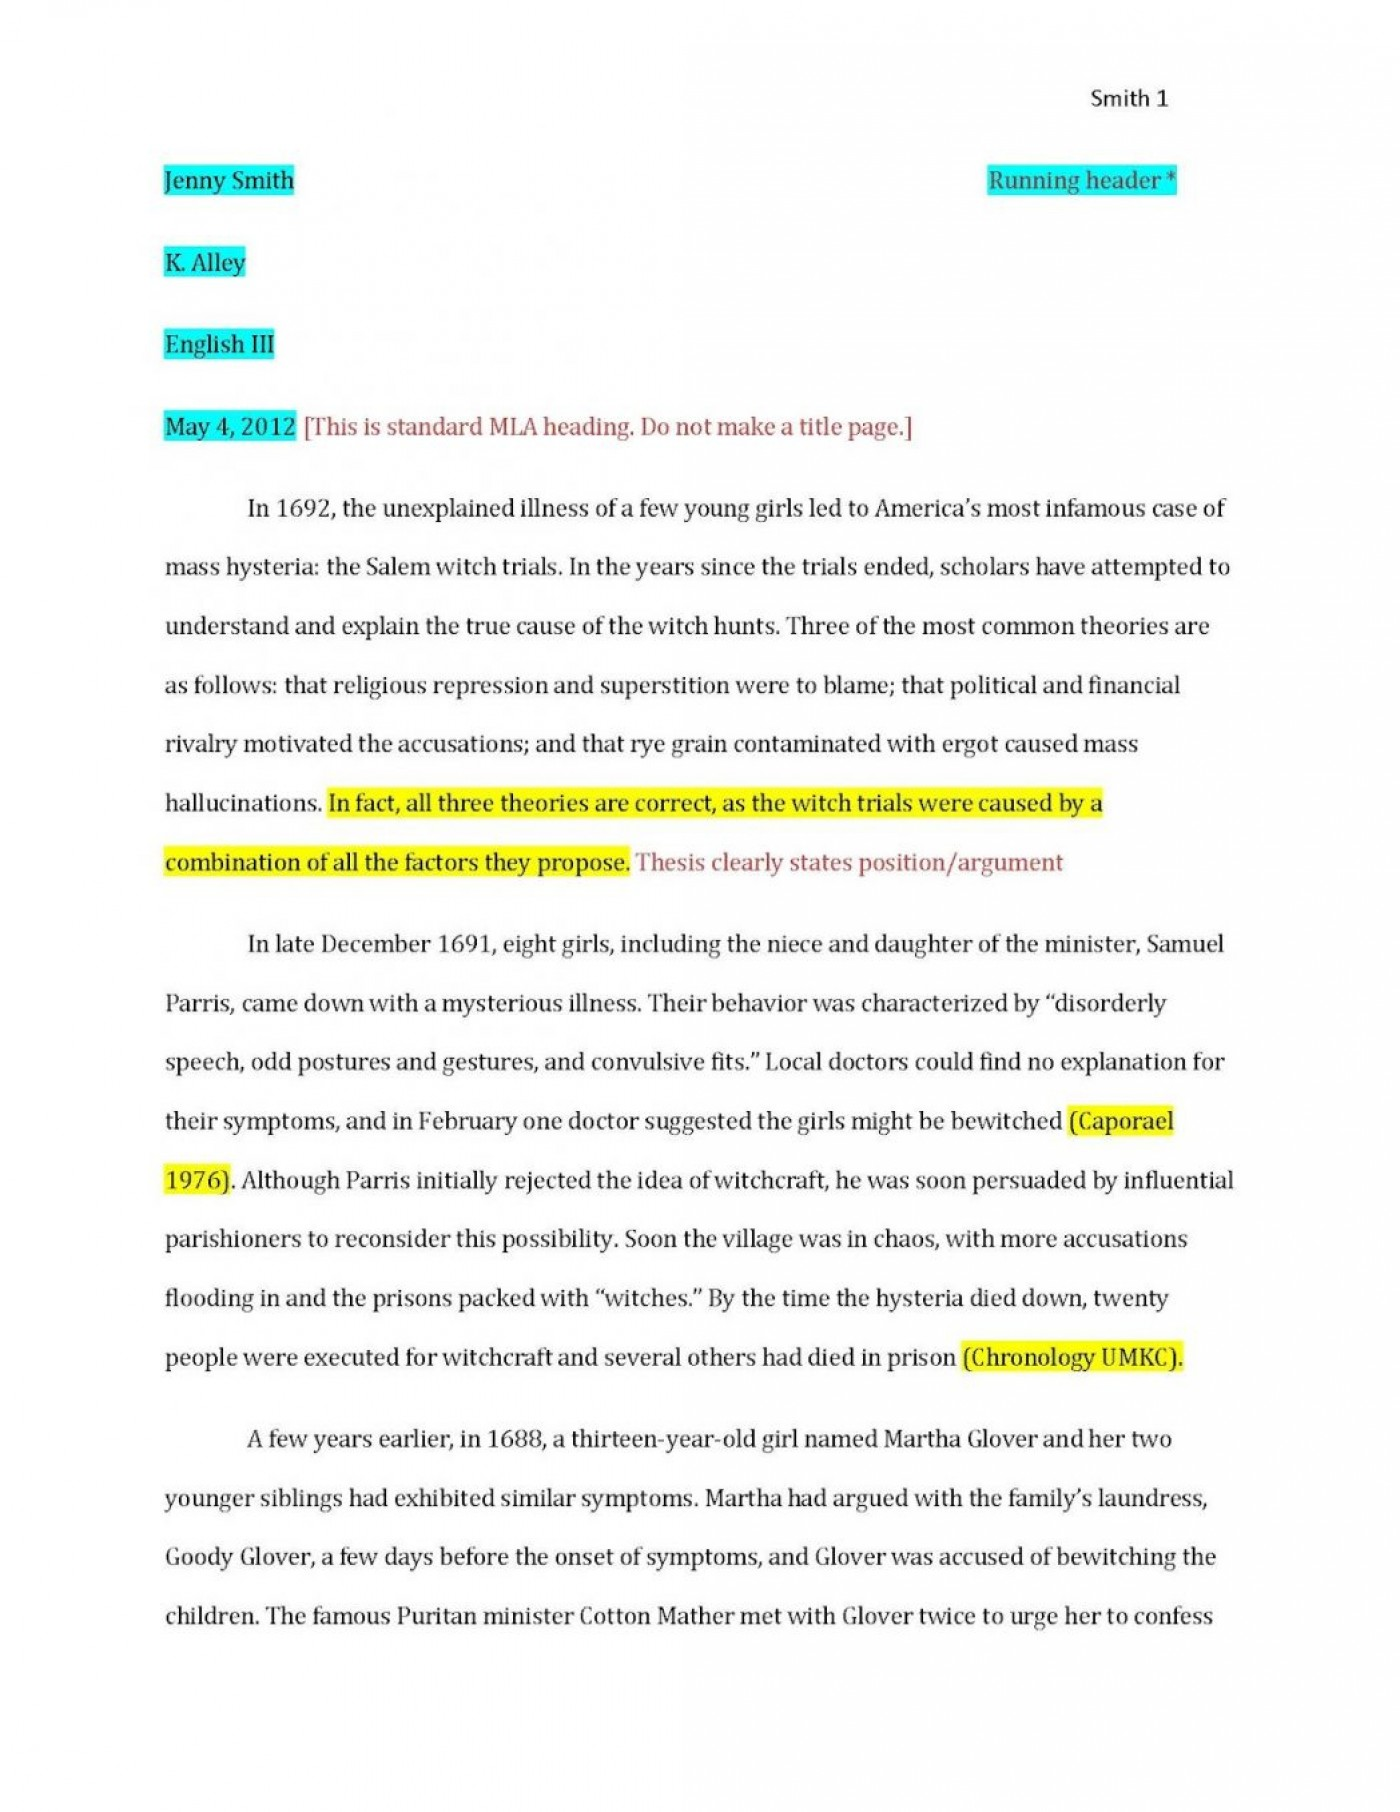 002 Mla Format Essay Generator Author Date References System Ready Set Automaticpaper P 1048x1357 Wondrous Funny Title Paper Software Download 1400